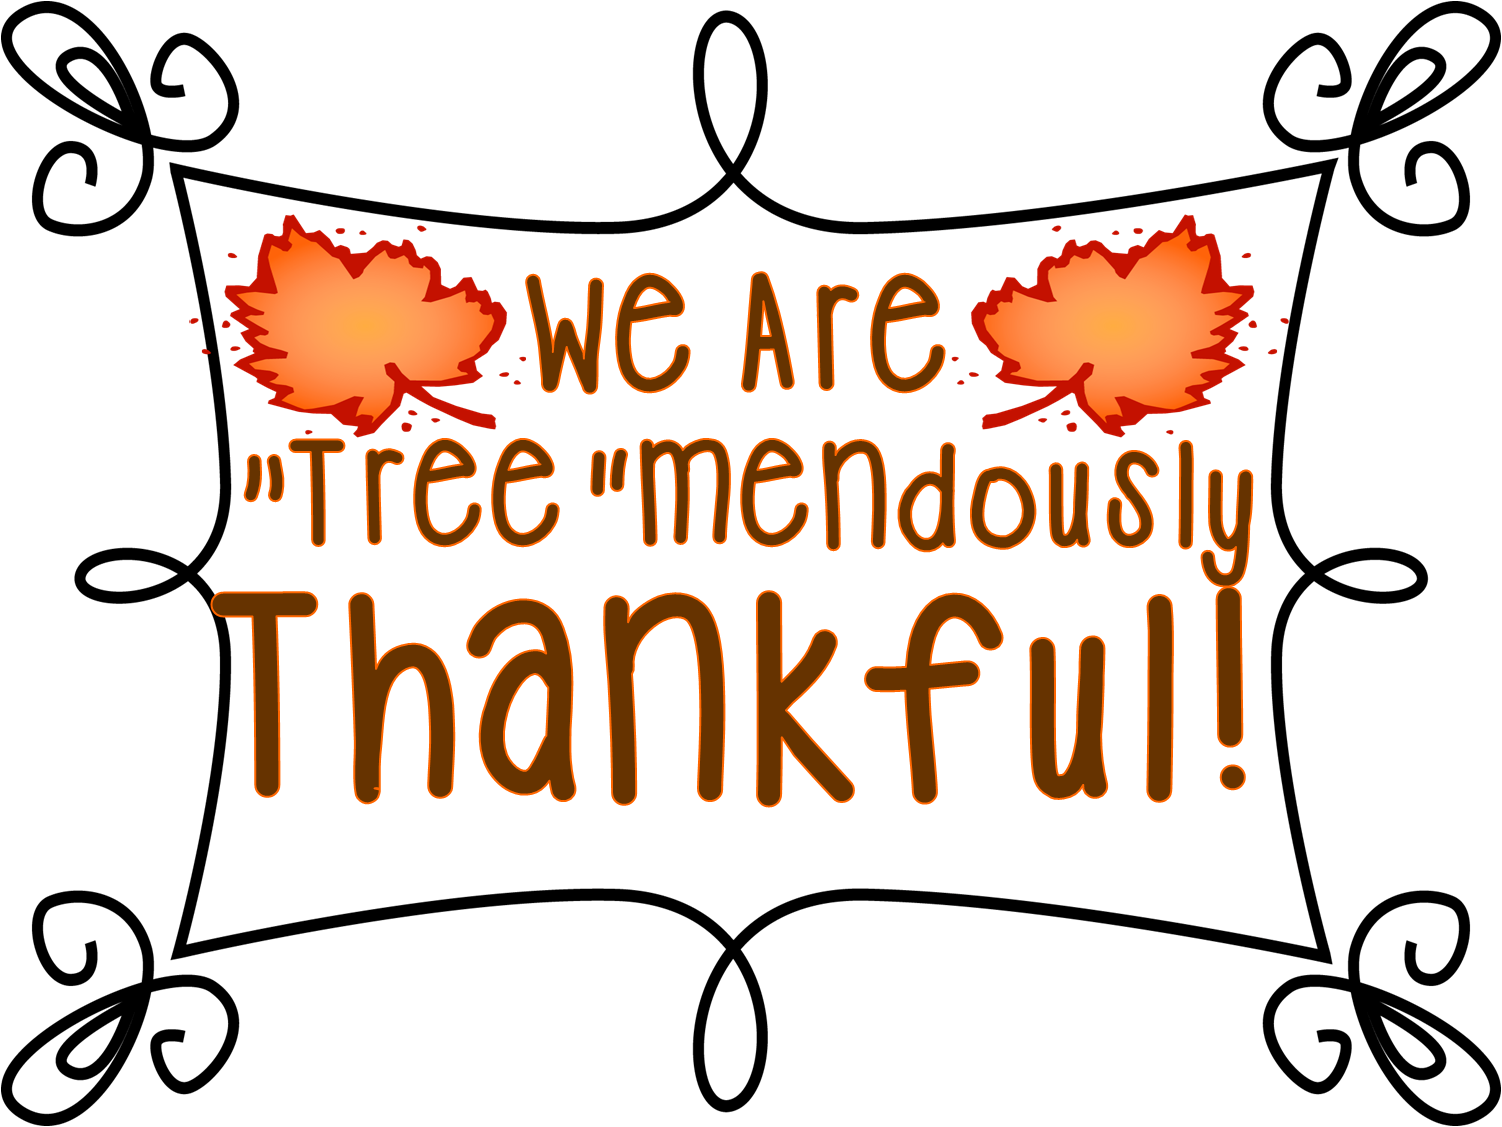 Tree mendously thankful and. Feast clipart grateful